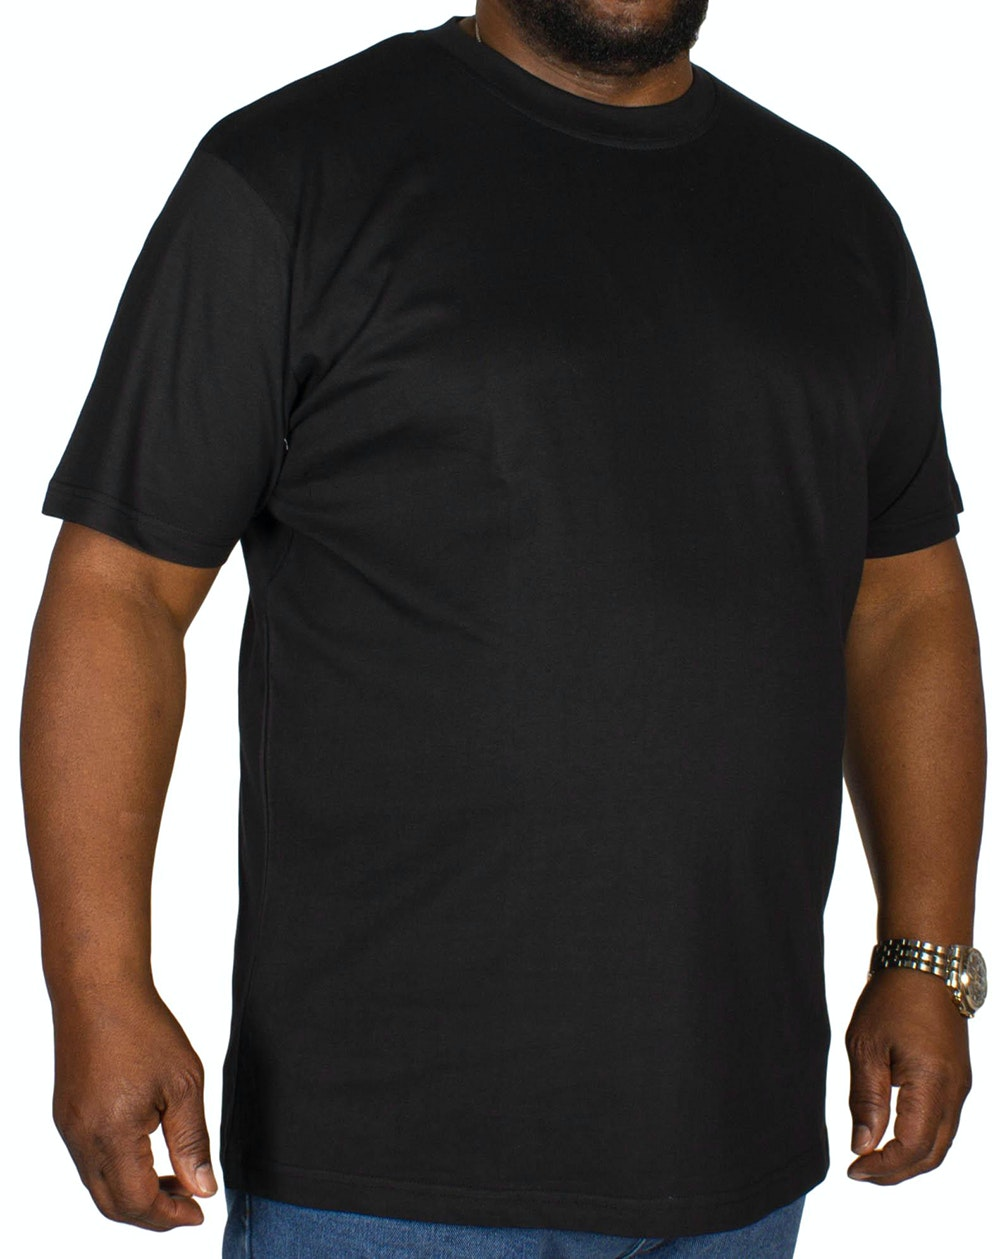 Bigdude Plain Crew Neck T-Shirt- Black